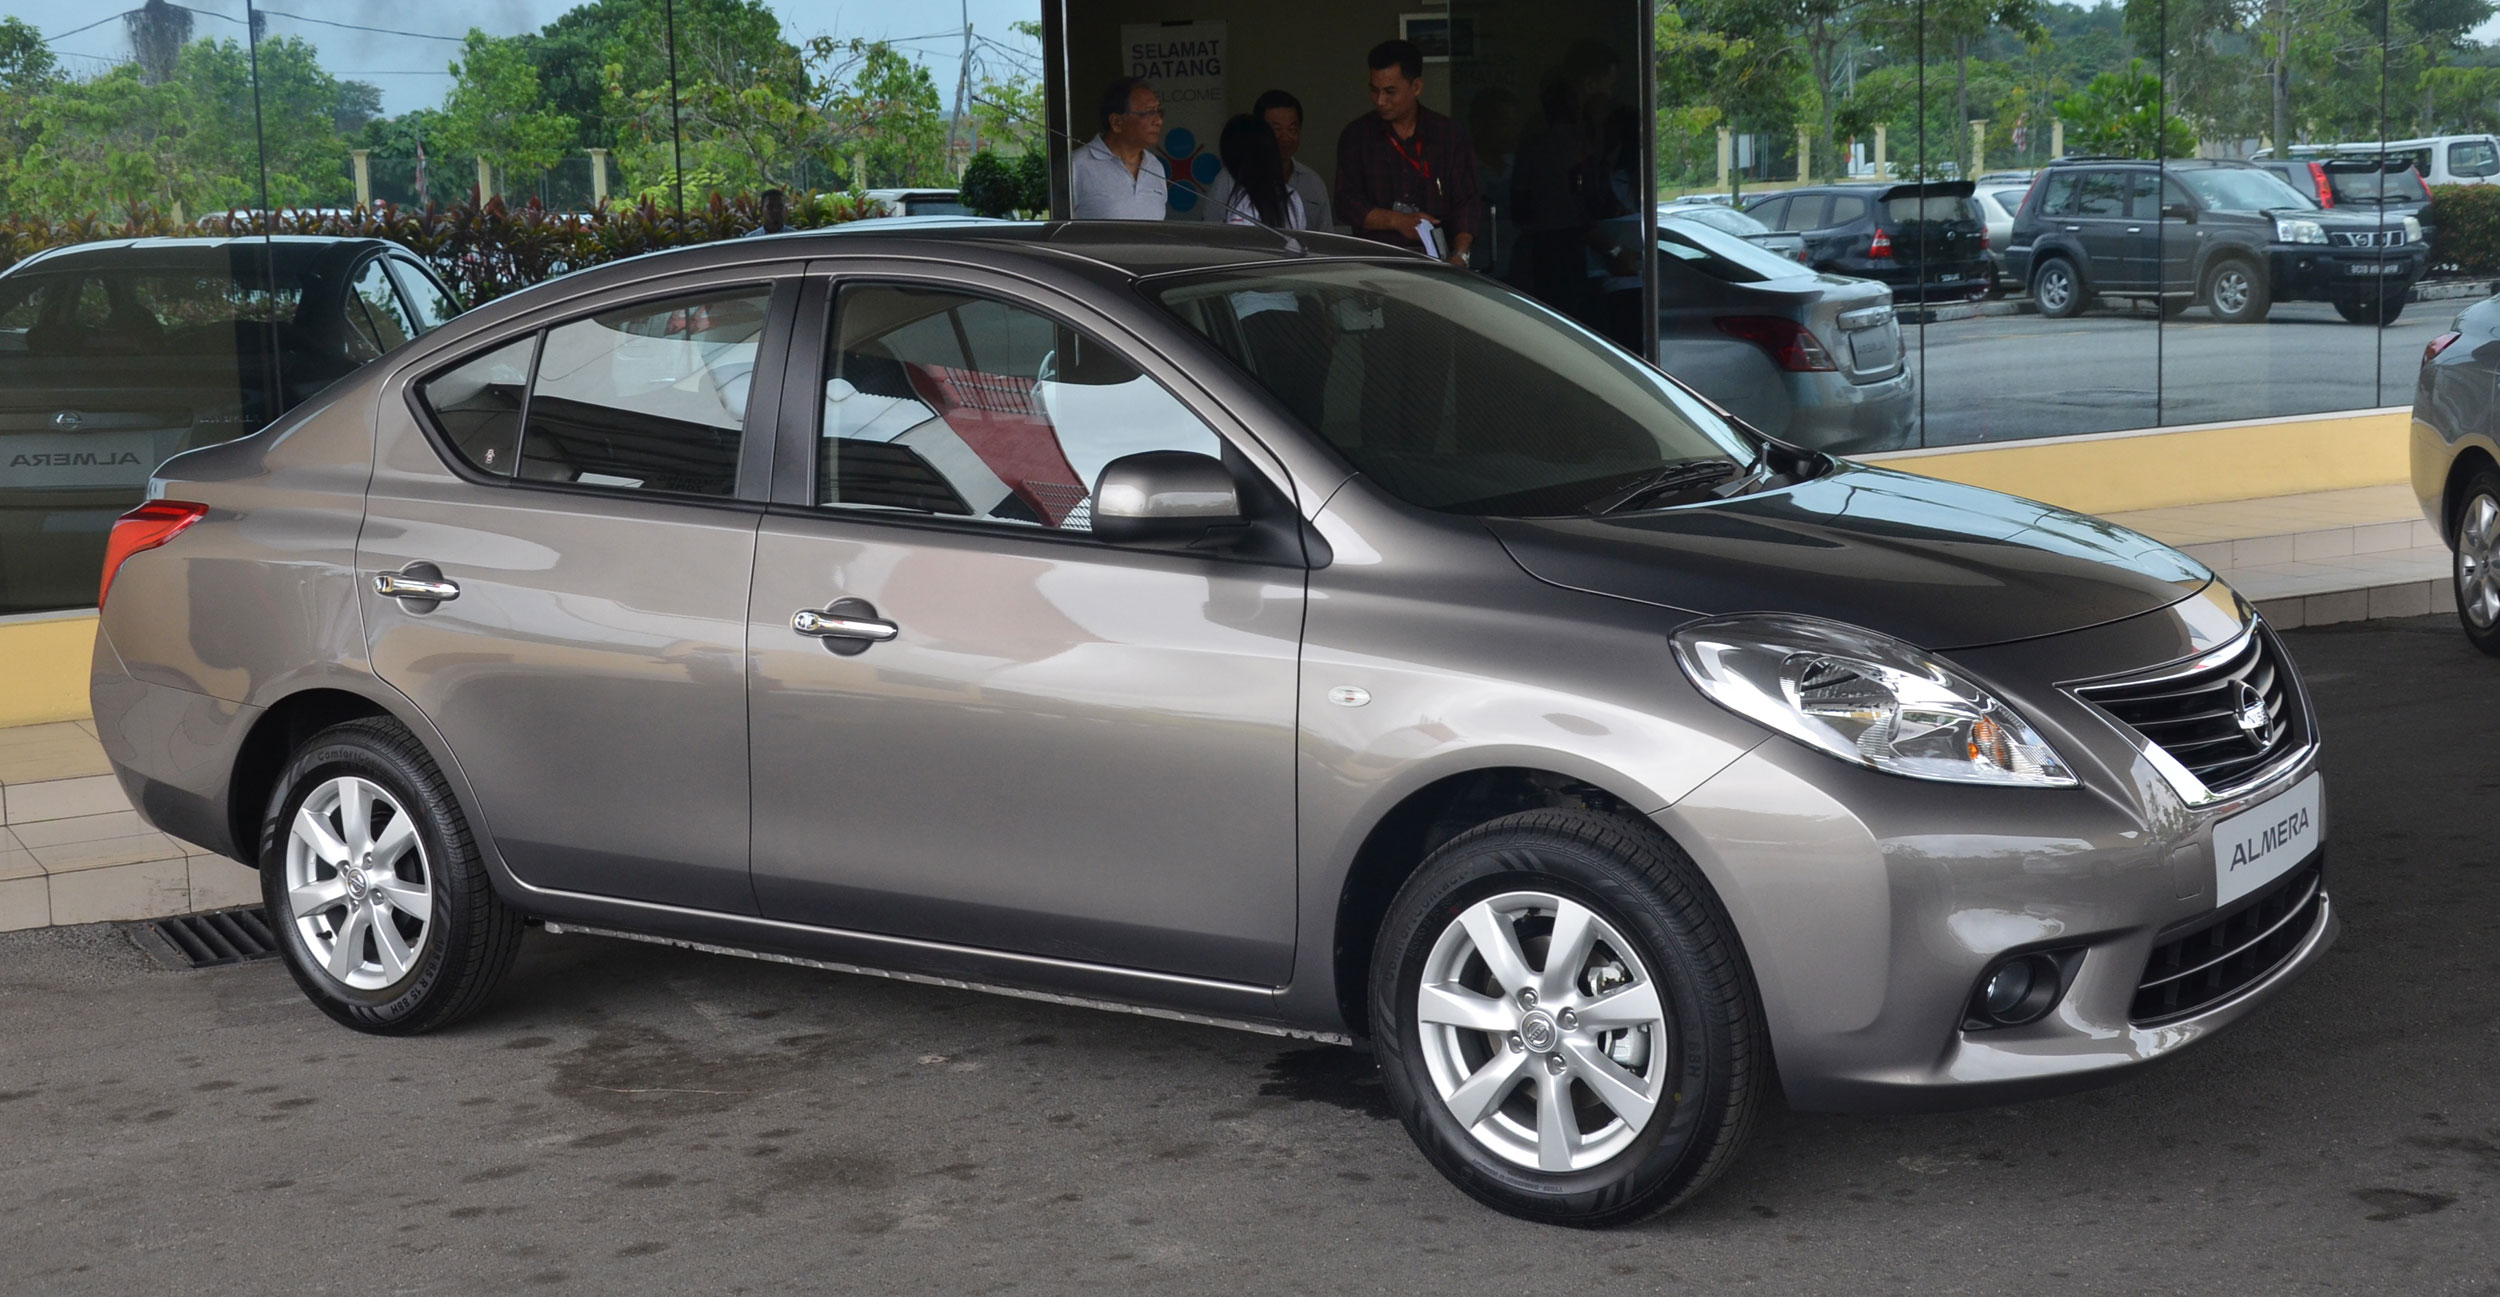 Nissan Almera Malaysia Infohub - Paul Tan's Automotive News